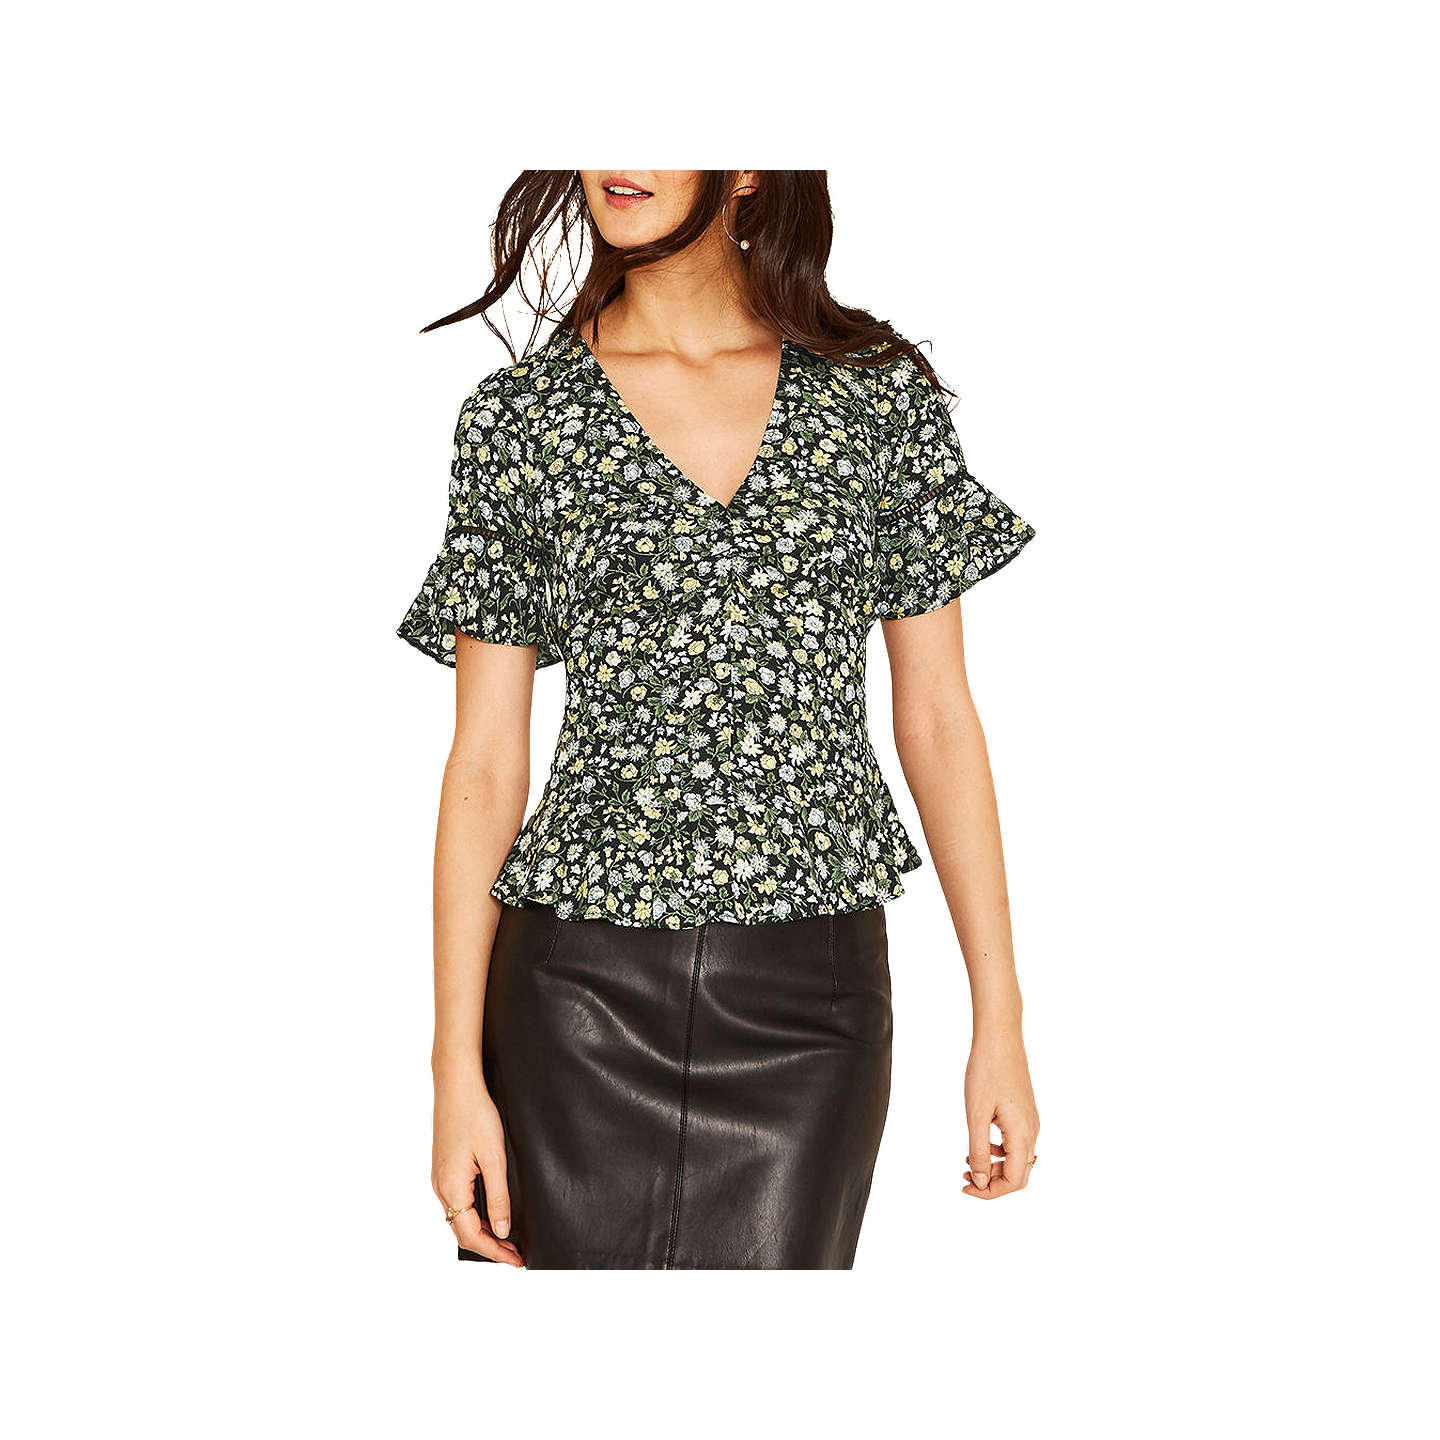 BuyOasis Ditsy Ruched Front Frill Top, Multi, 6 Online at johnlewis.com